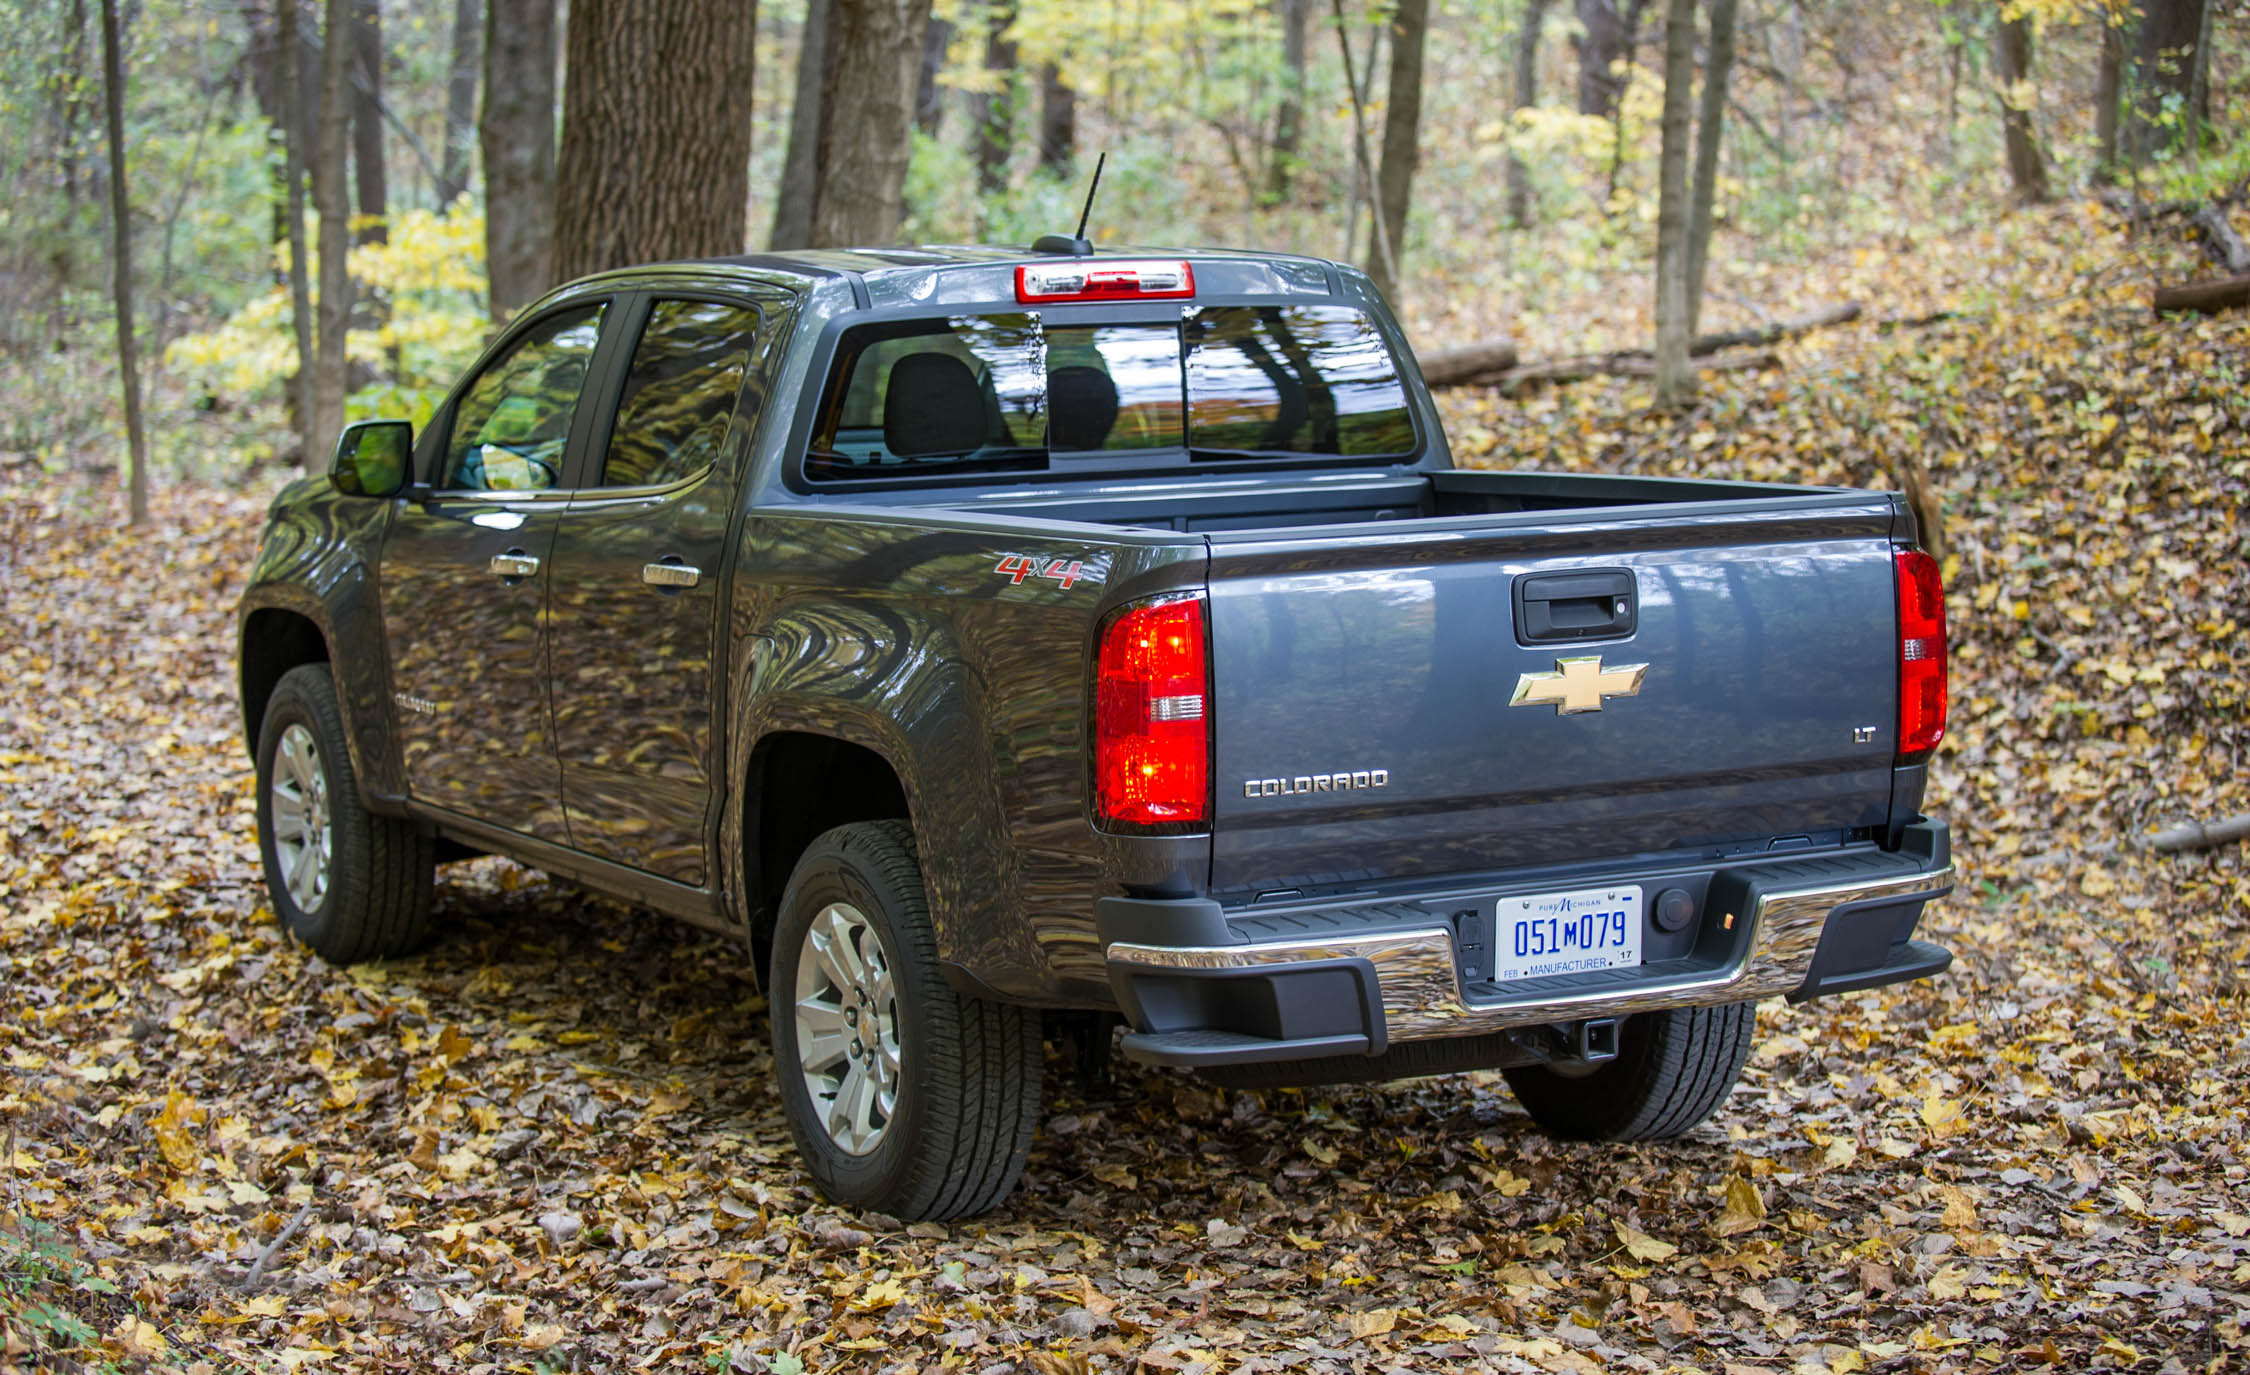 2017 Chevrolet Colorado Exterior Rear And Side (Photo 7 of 41)